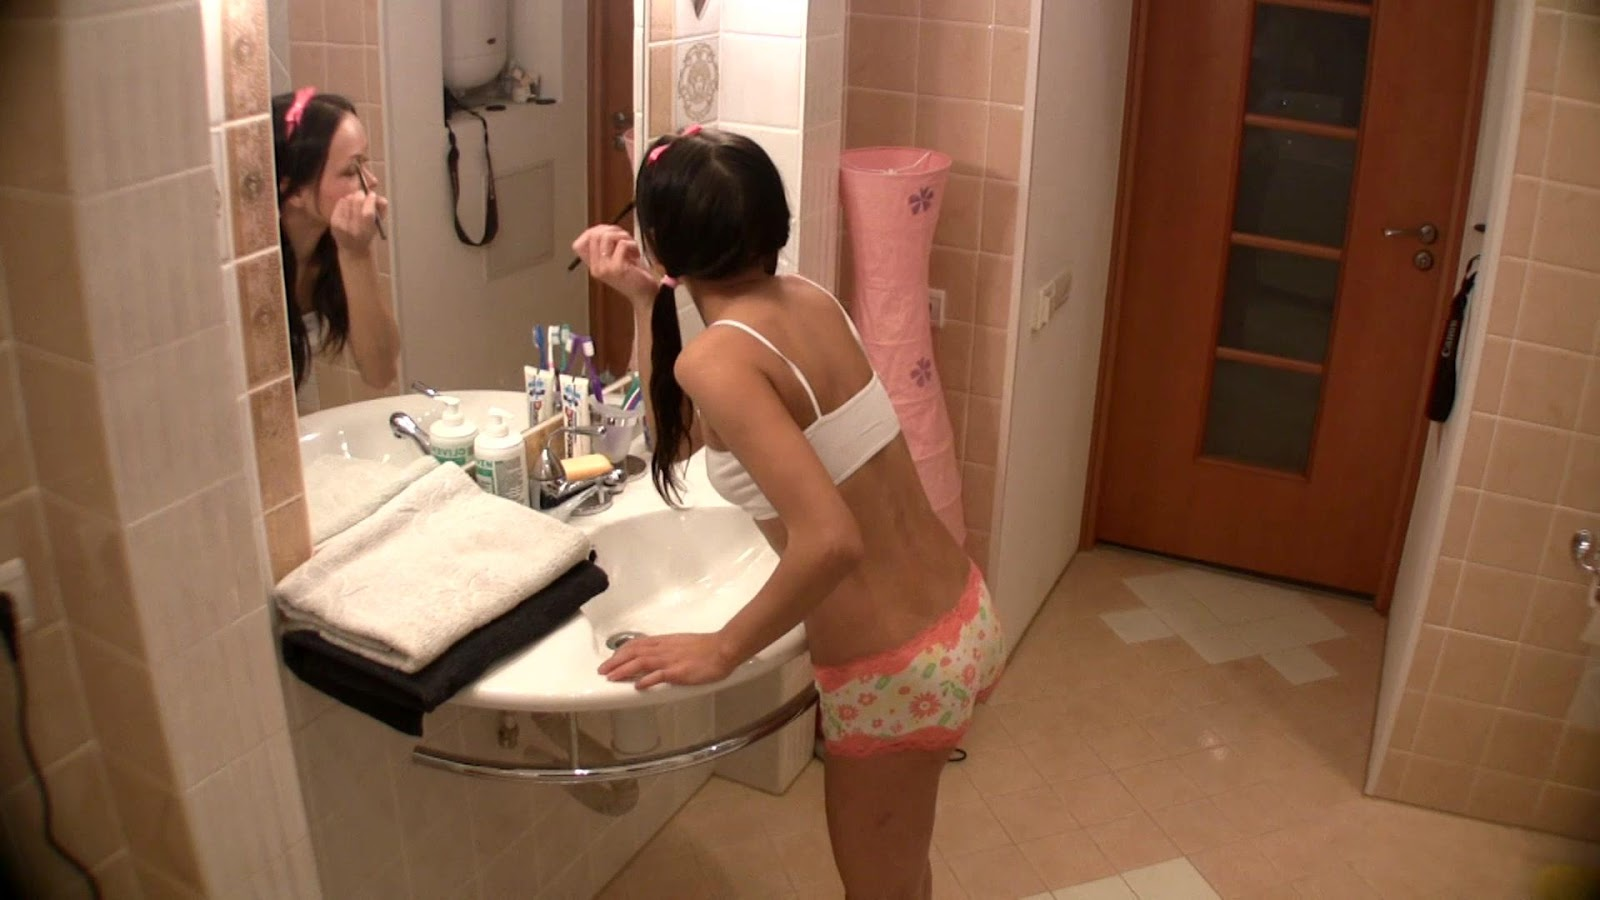 the elder brother fucks his young sister in bathroom | xvideos for you